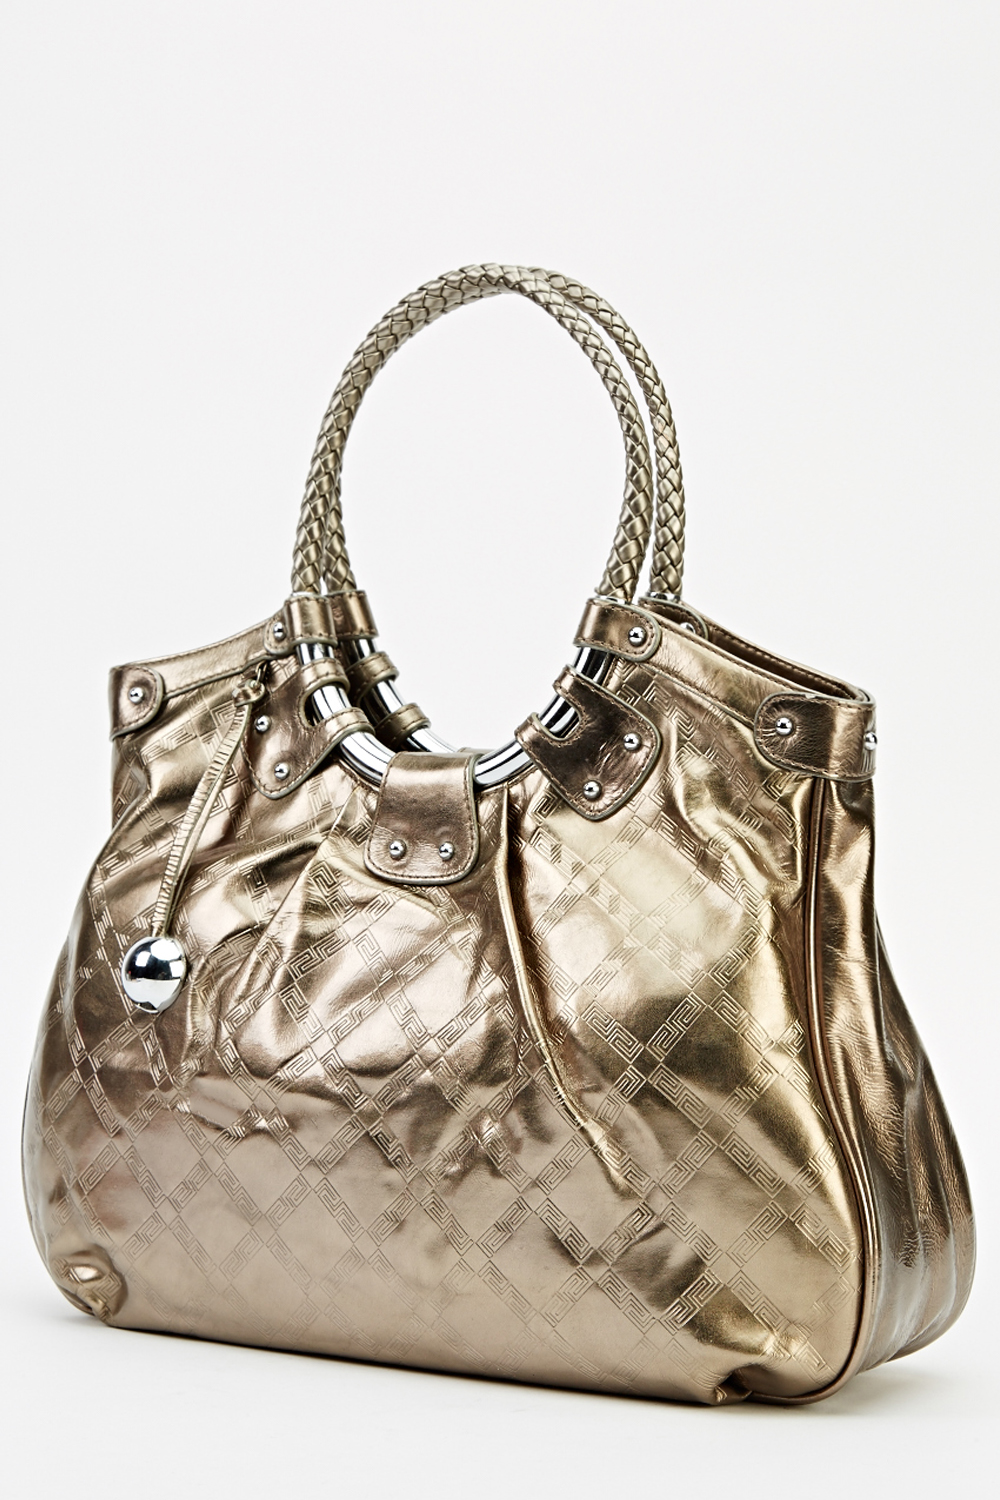 7f174dc4df Woven Round Handle Metallic Bag. Click on the image to zoom